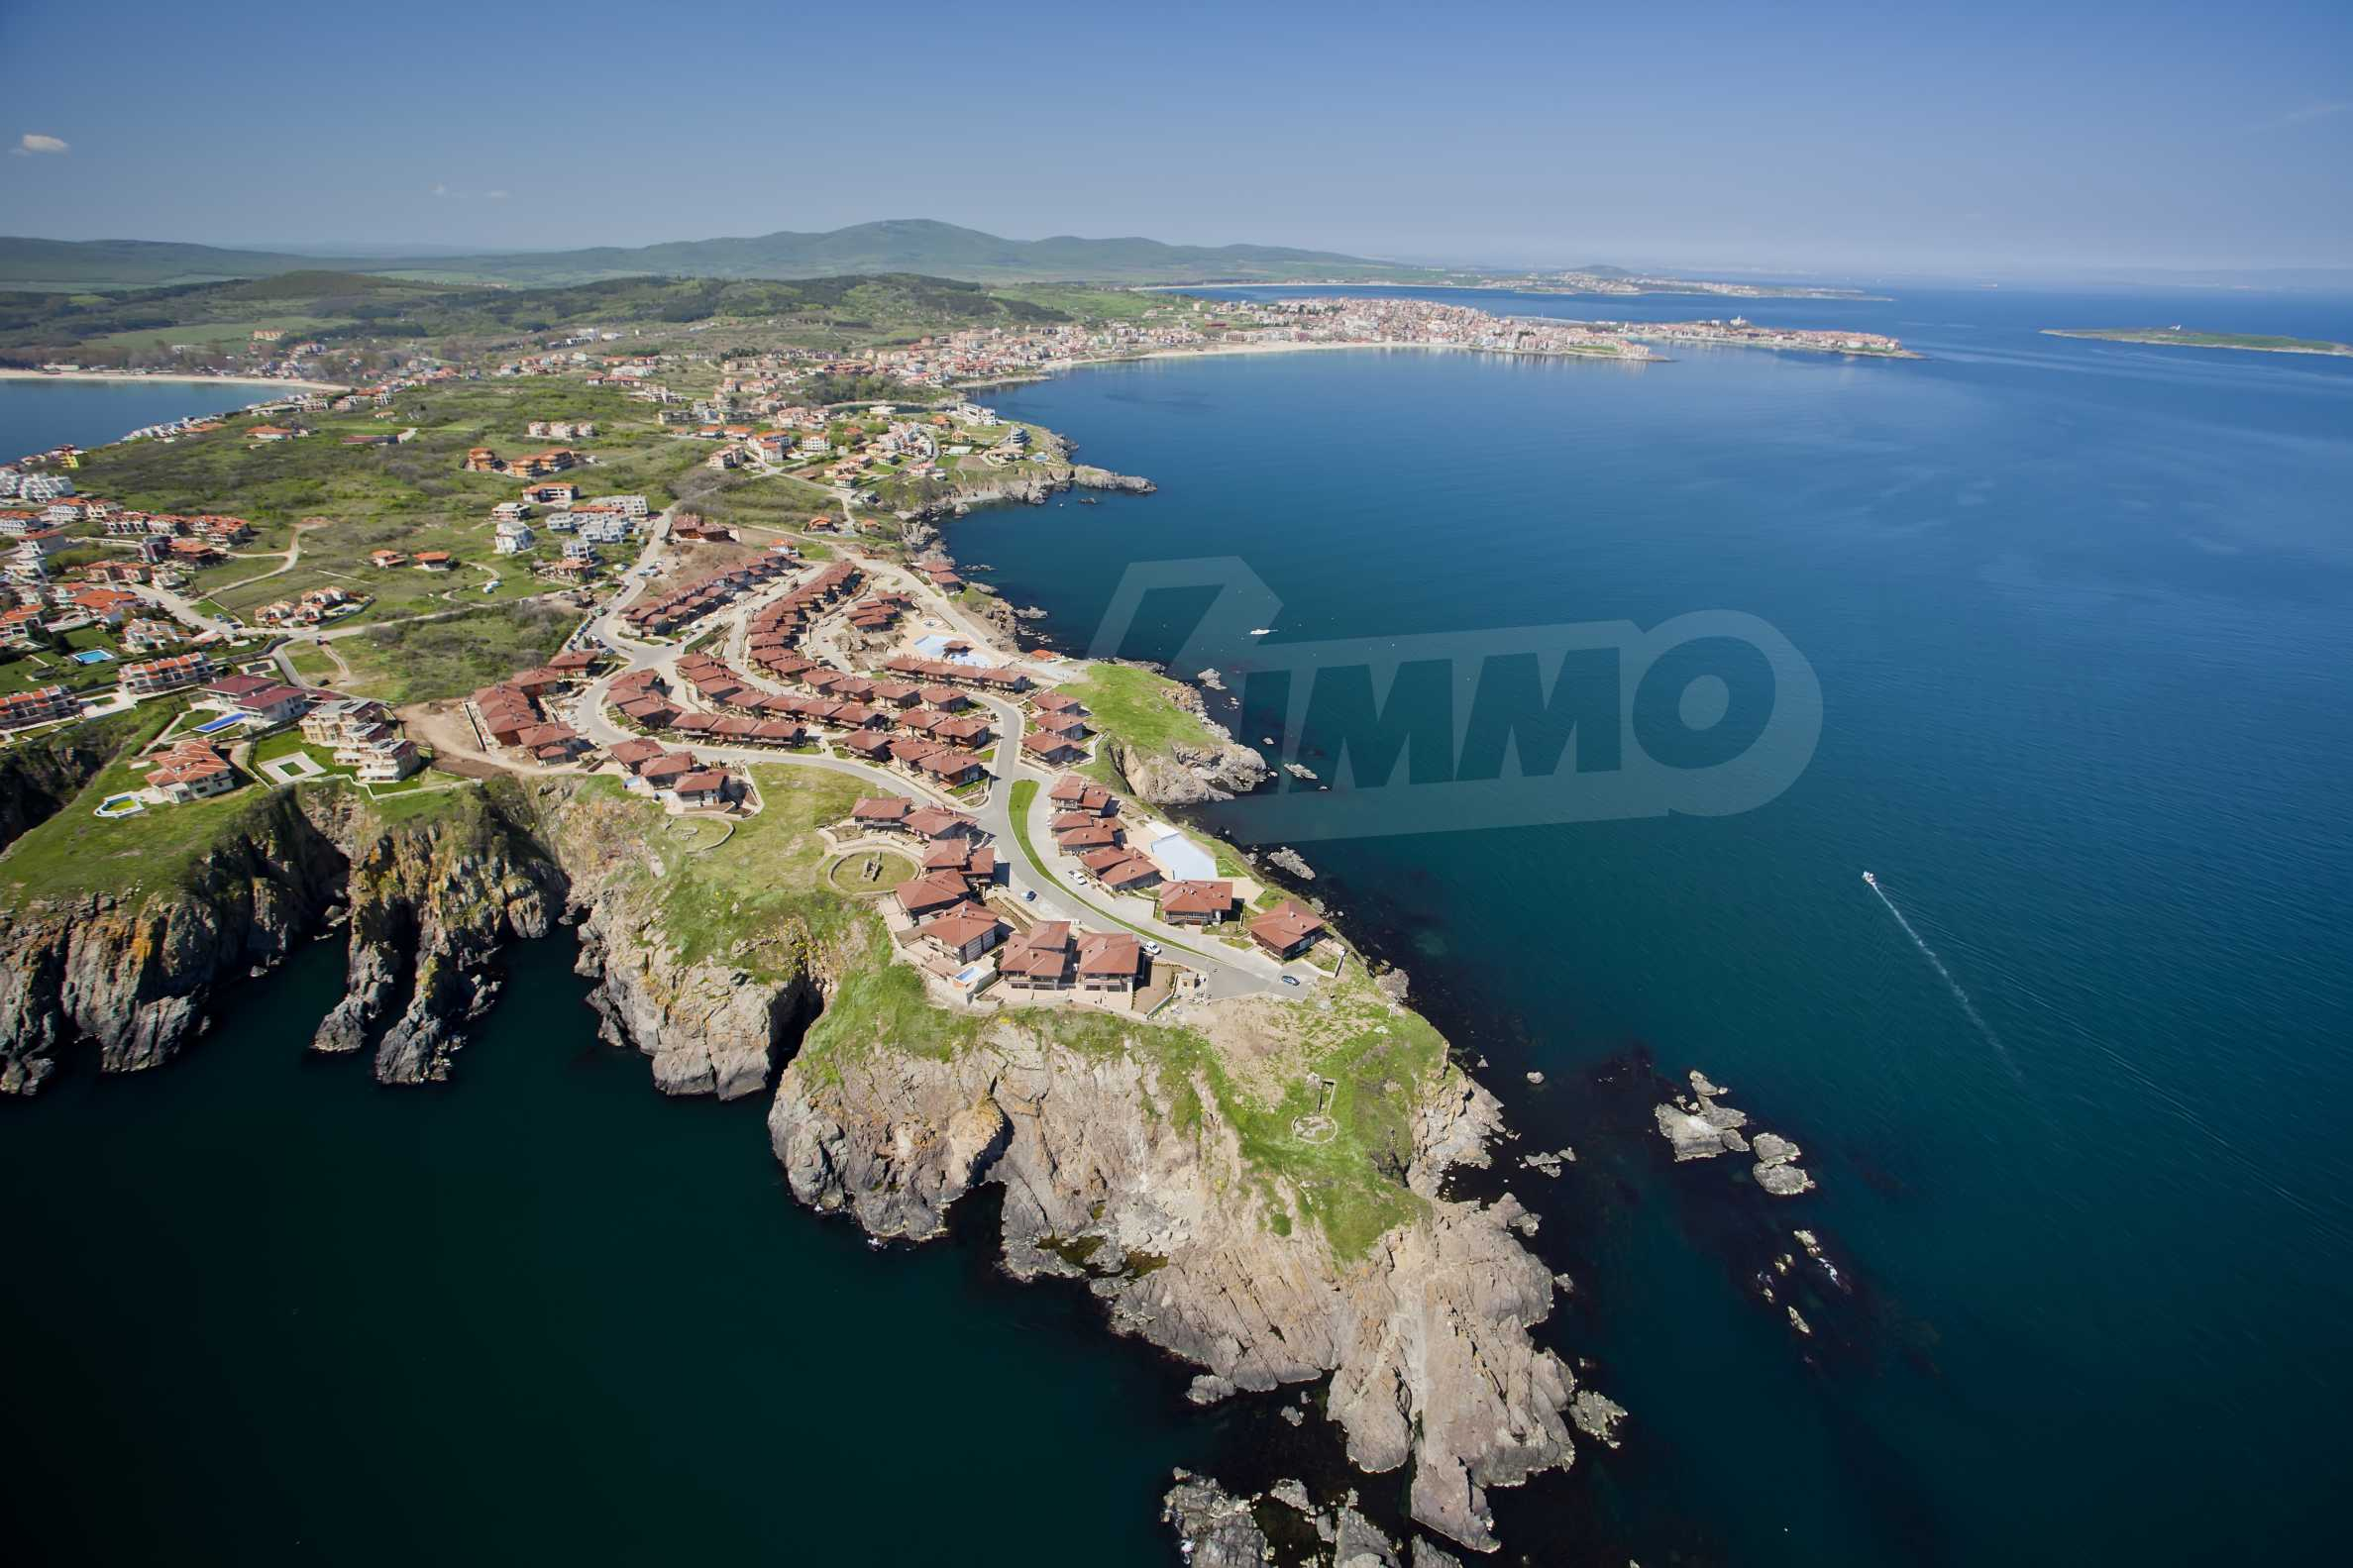 Sozopolis - unique coastal complex of townhouses and apartments near Sozopol